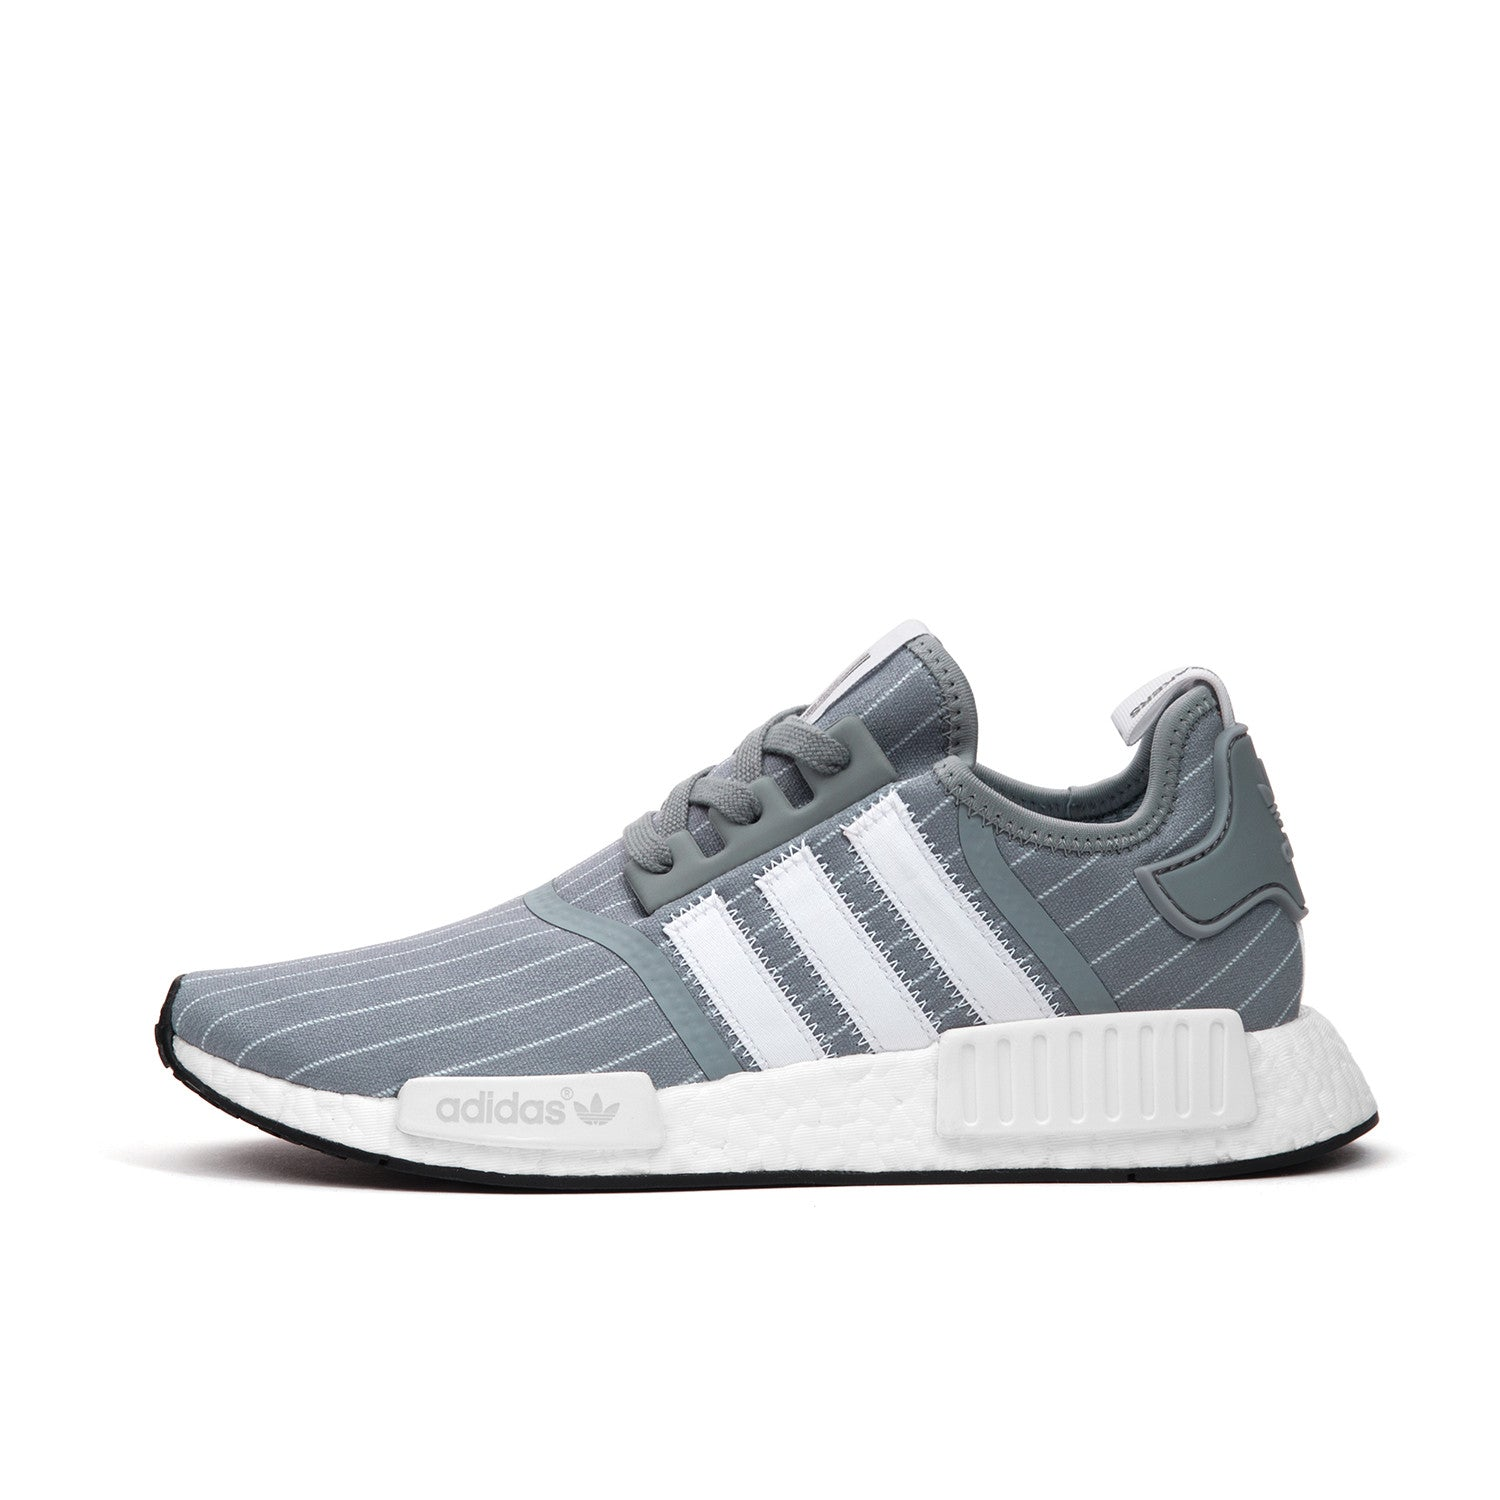 adidas Originals NMD_R1 'Bedwin' Grey